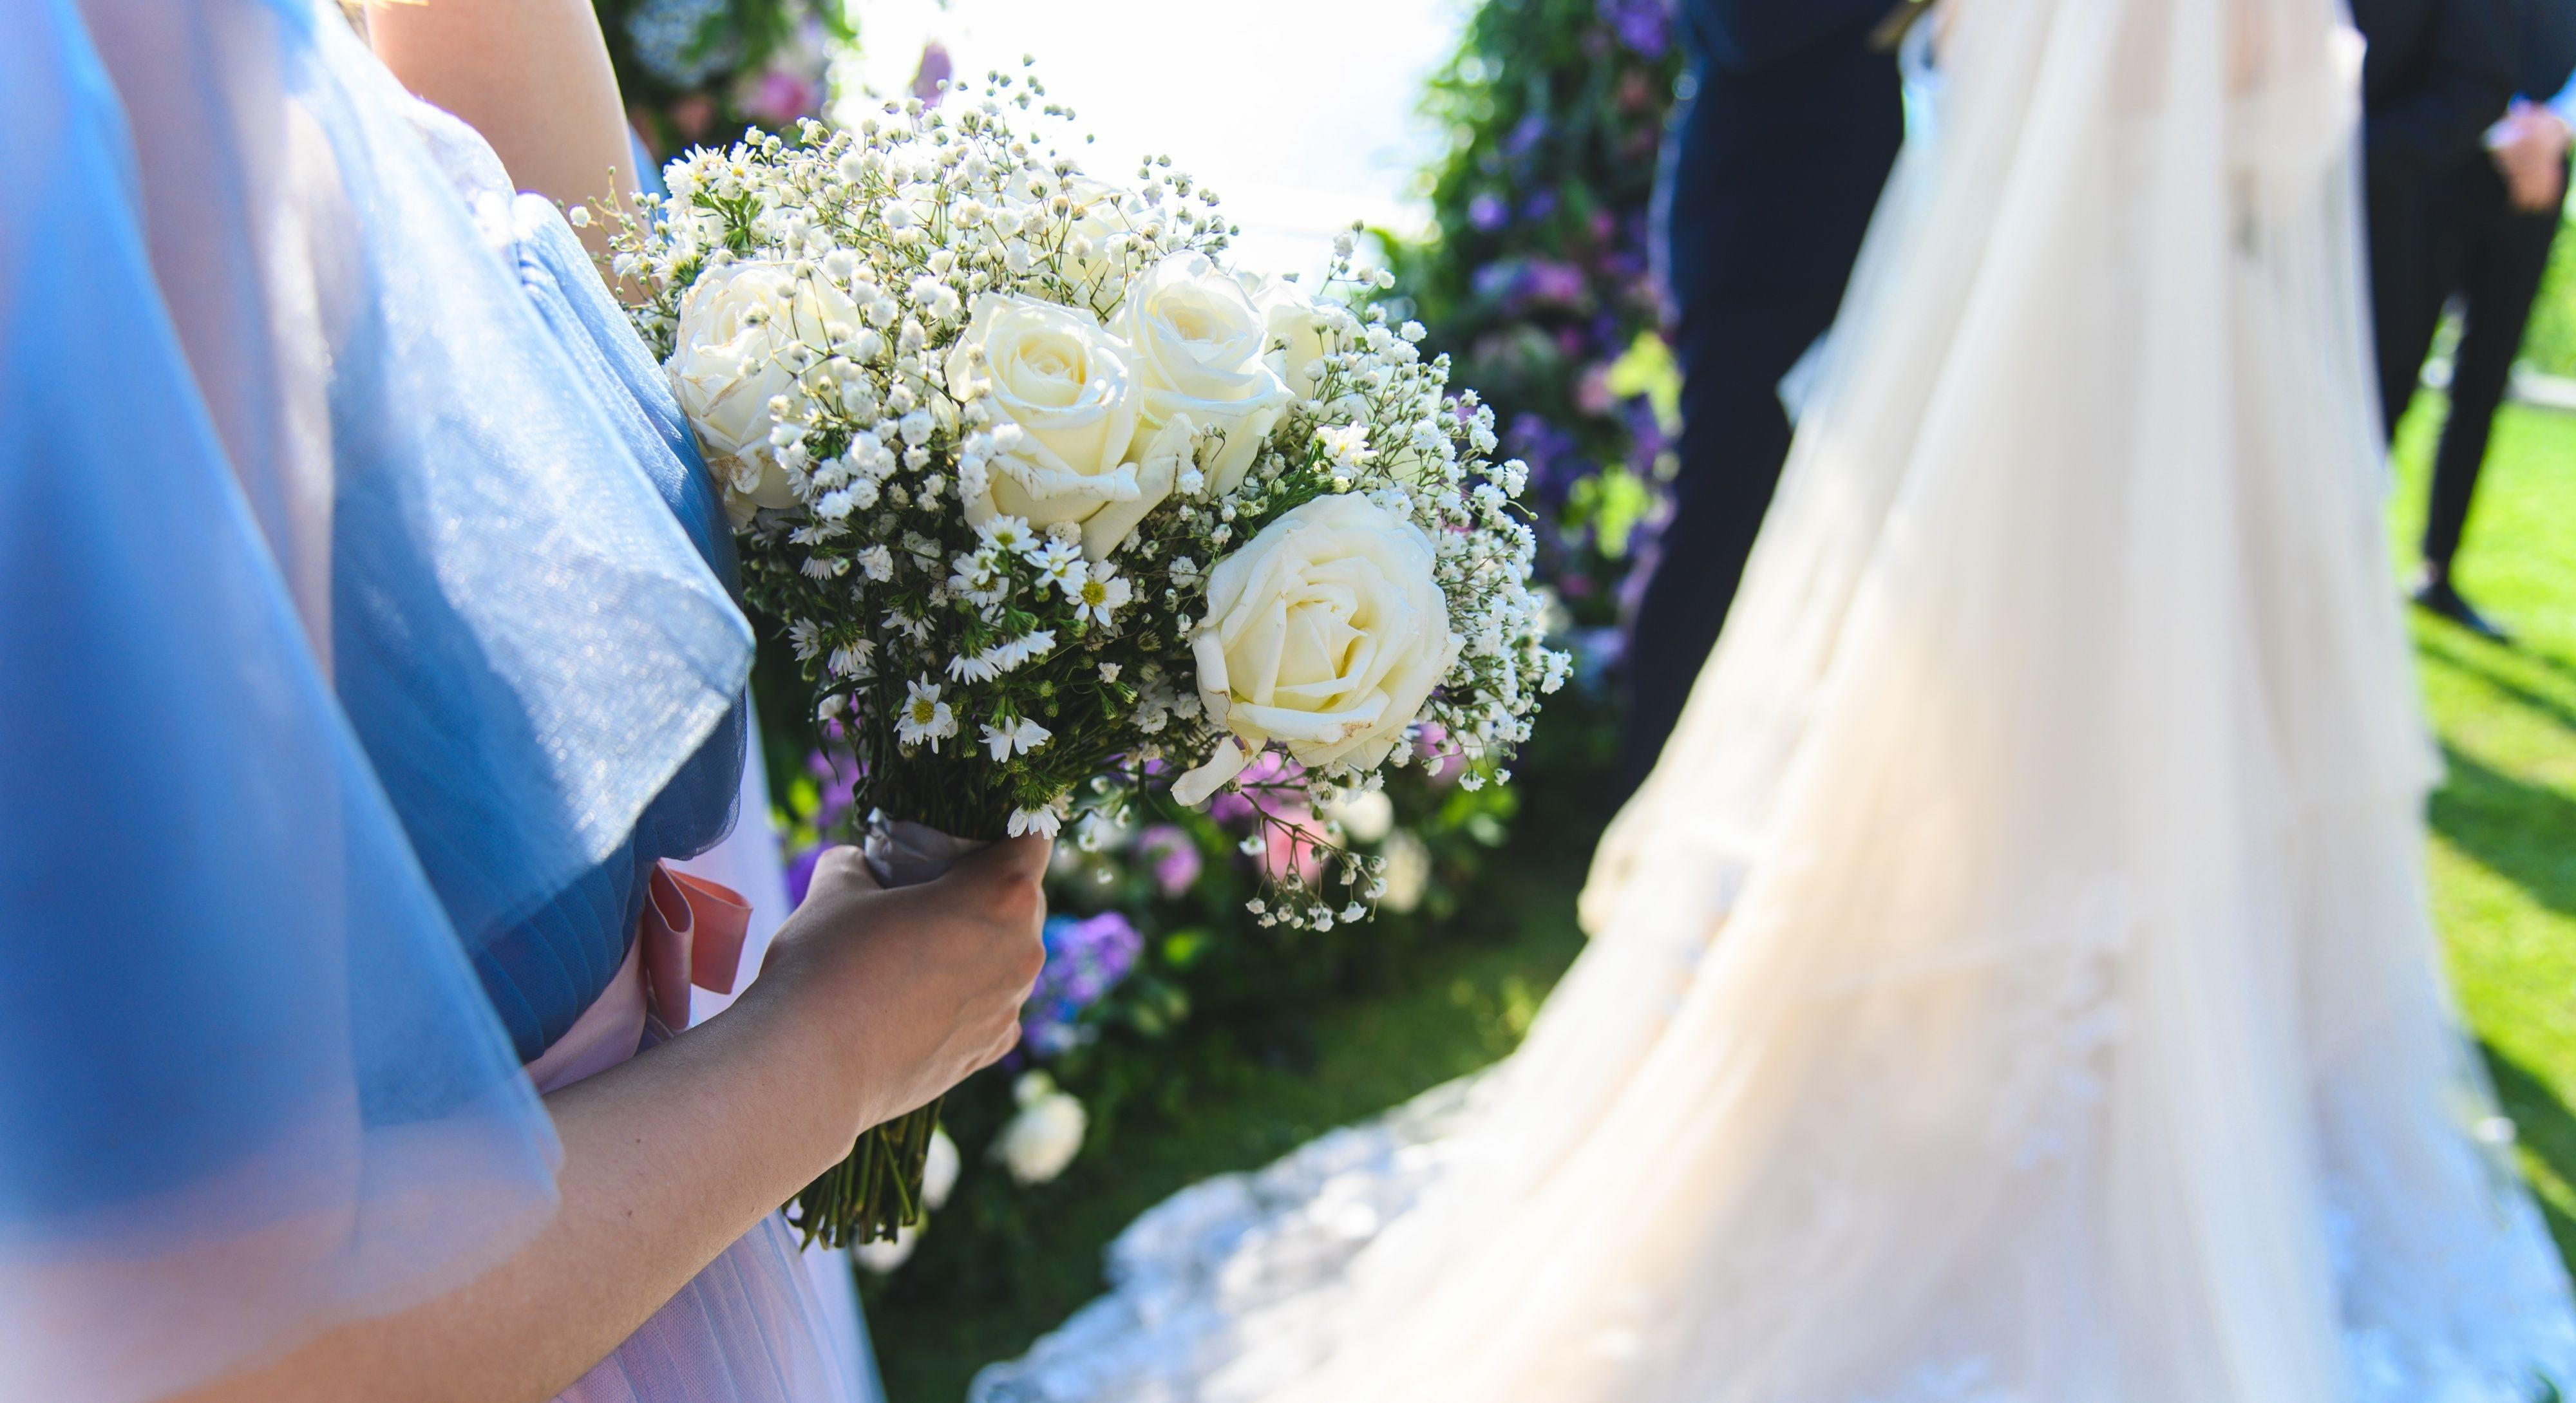 Live goldfish wedding favours backfire on maid of honour